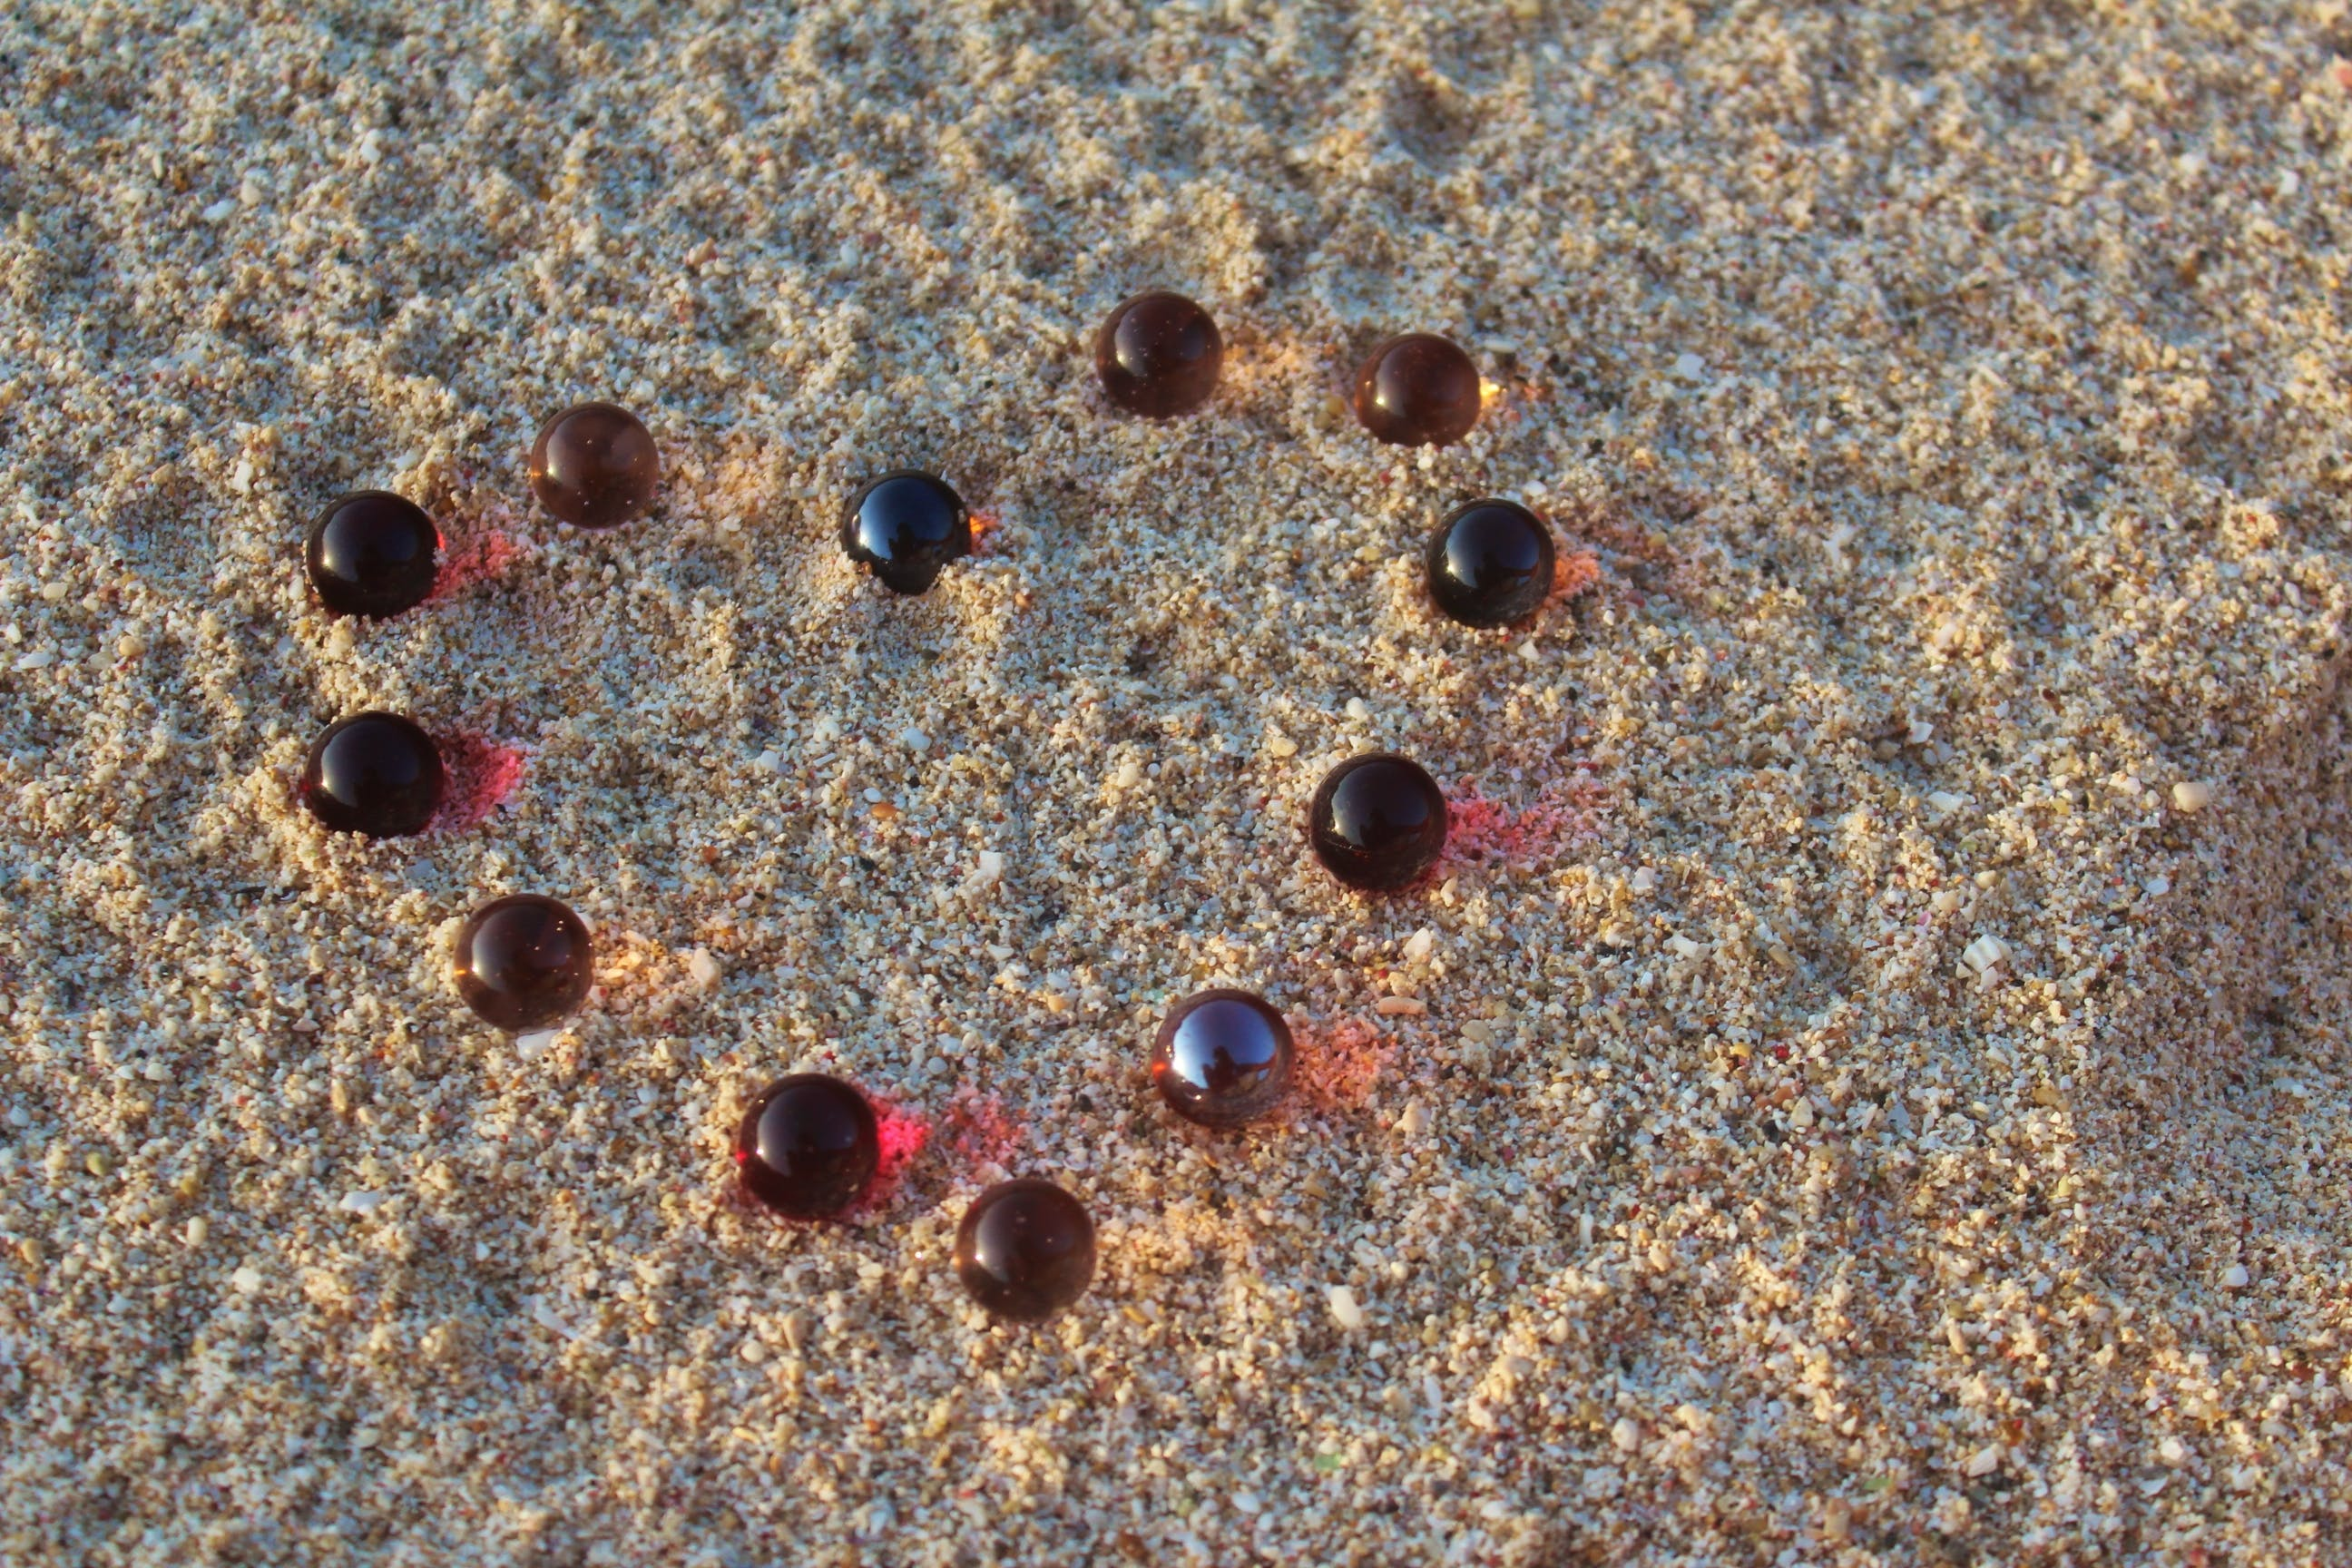 Free stock photo of Beach art, beach sand, hearts, marble compositions